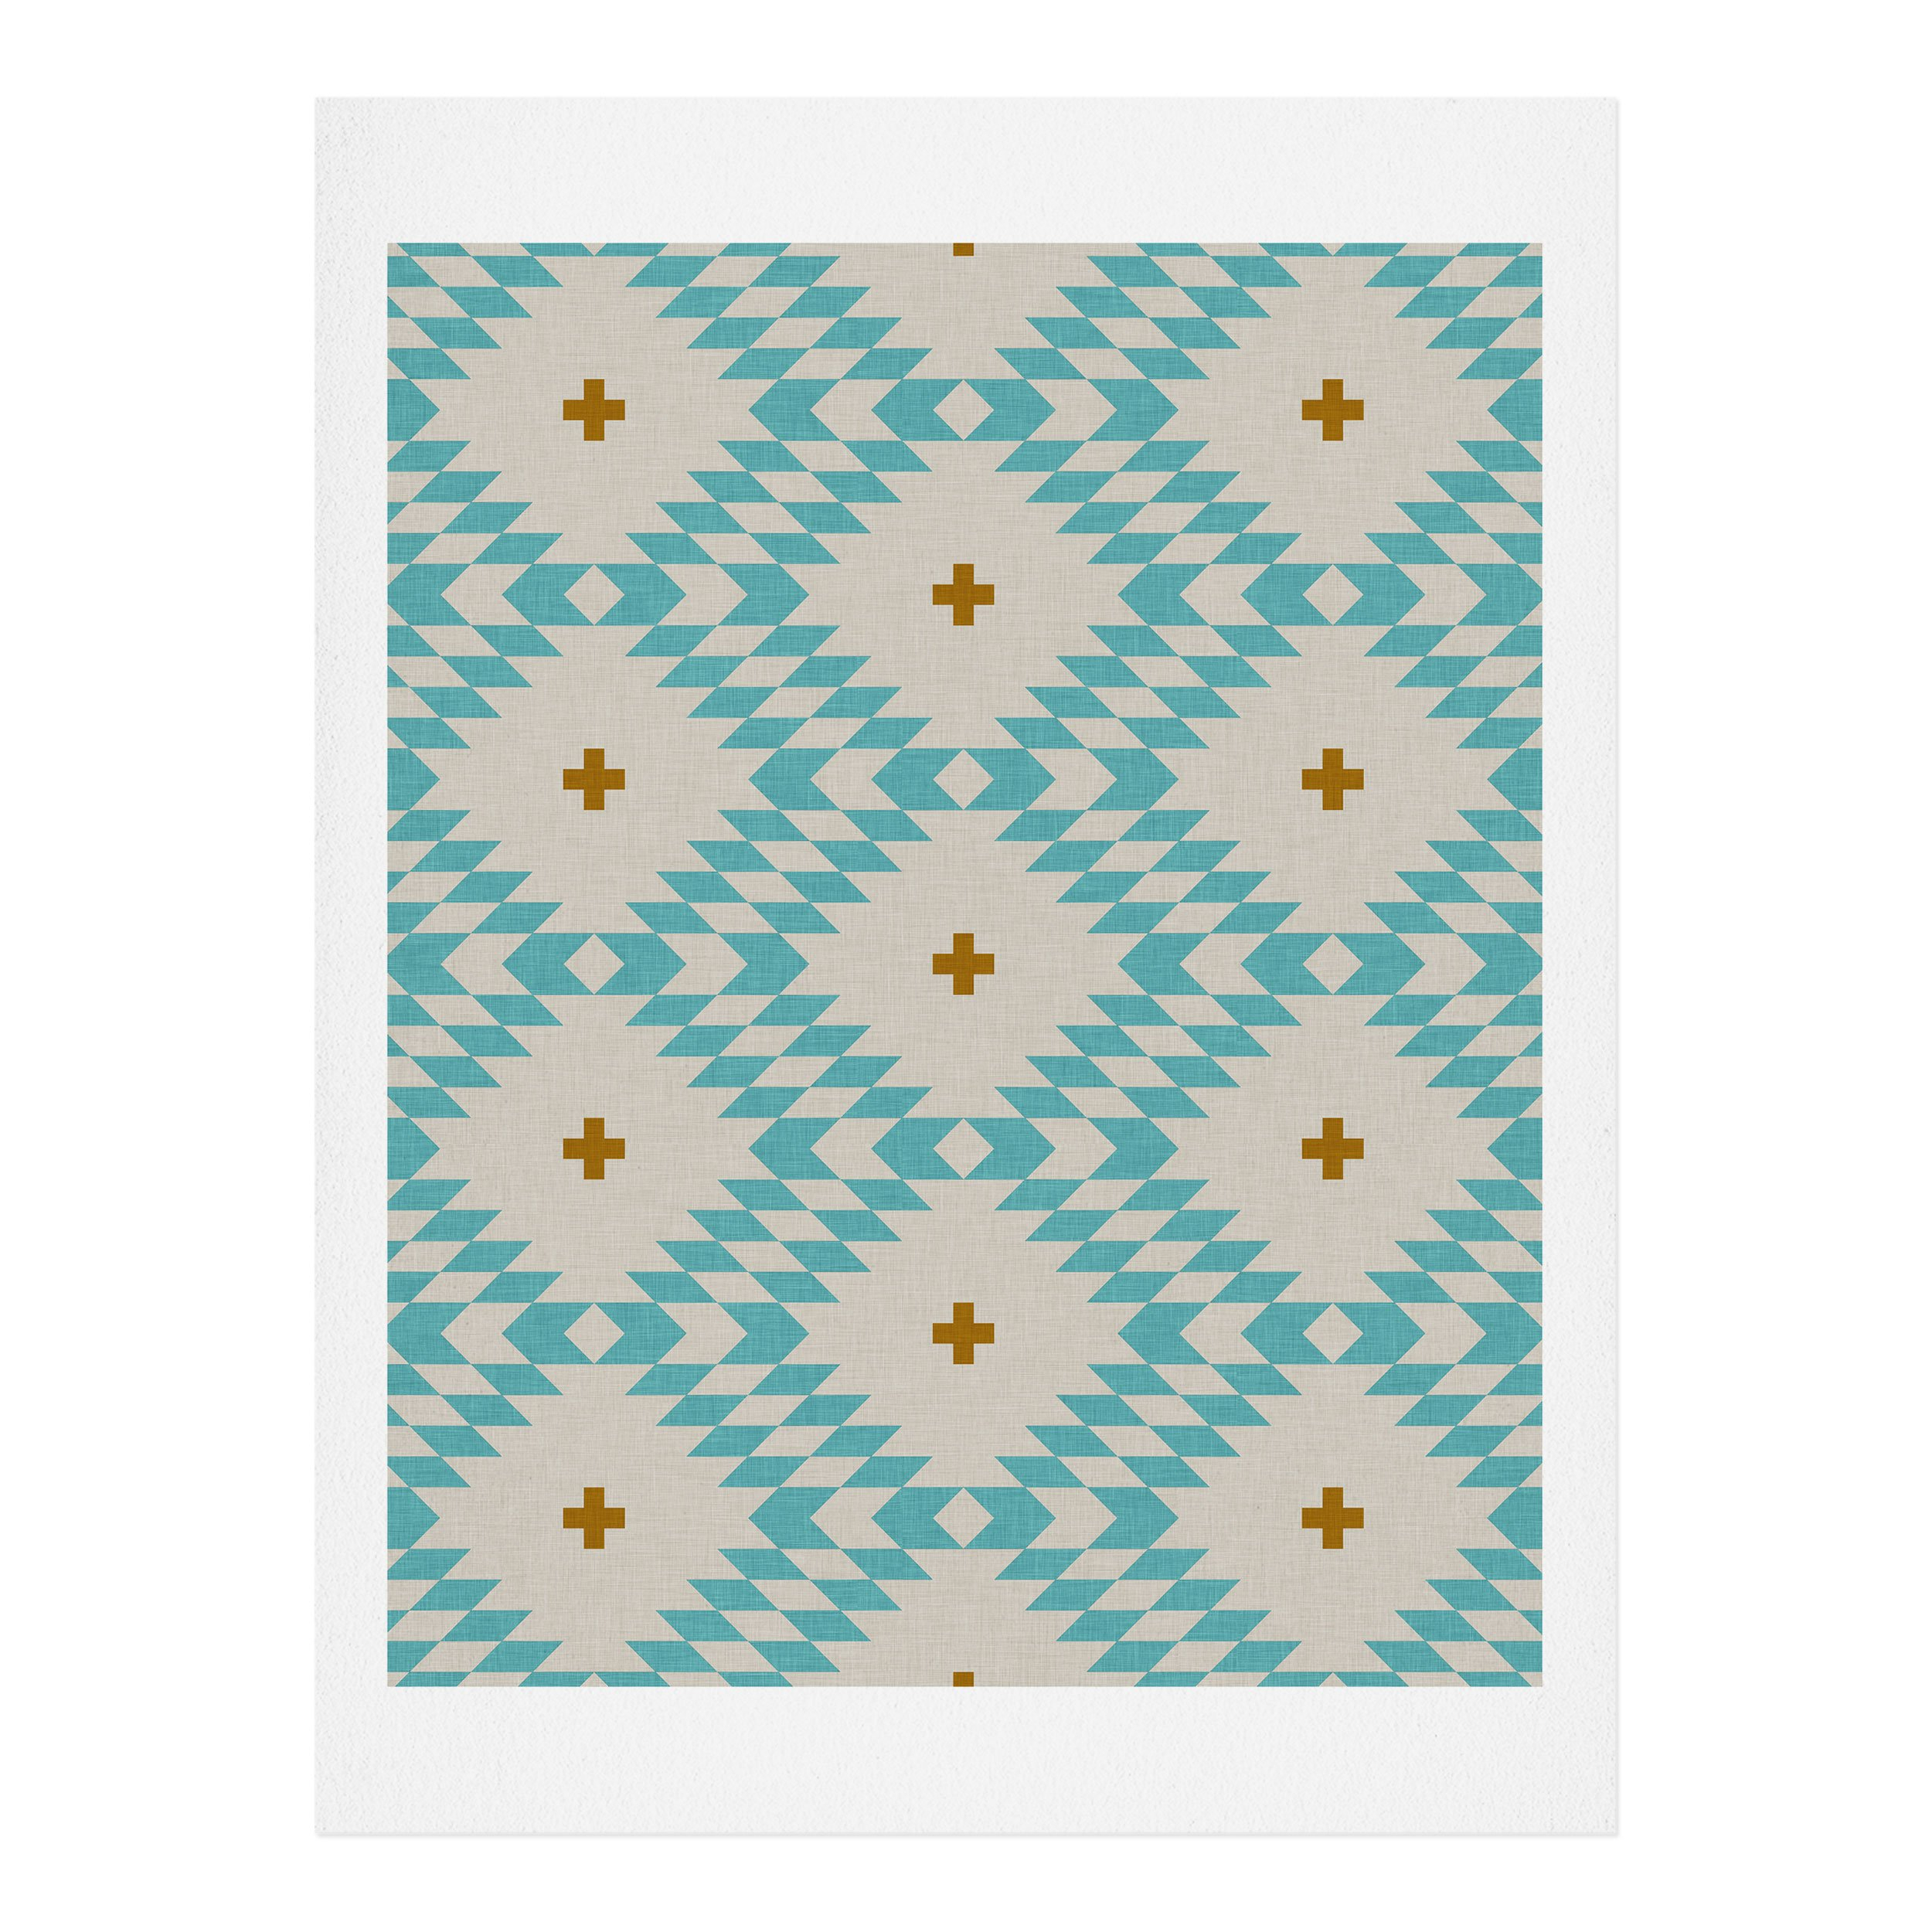 Image of Holli Zollinger Native Natural Plus Turquoise Art Print